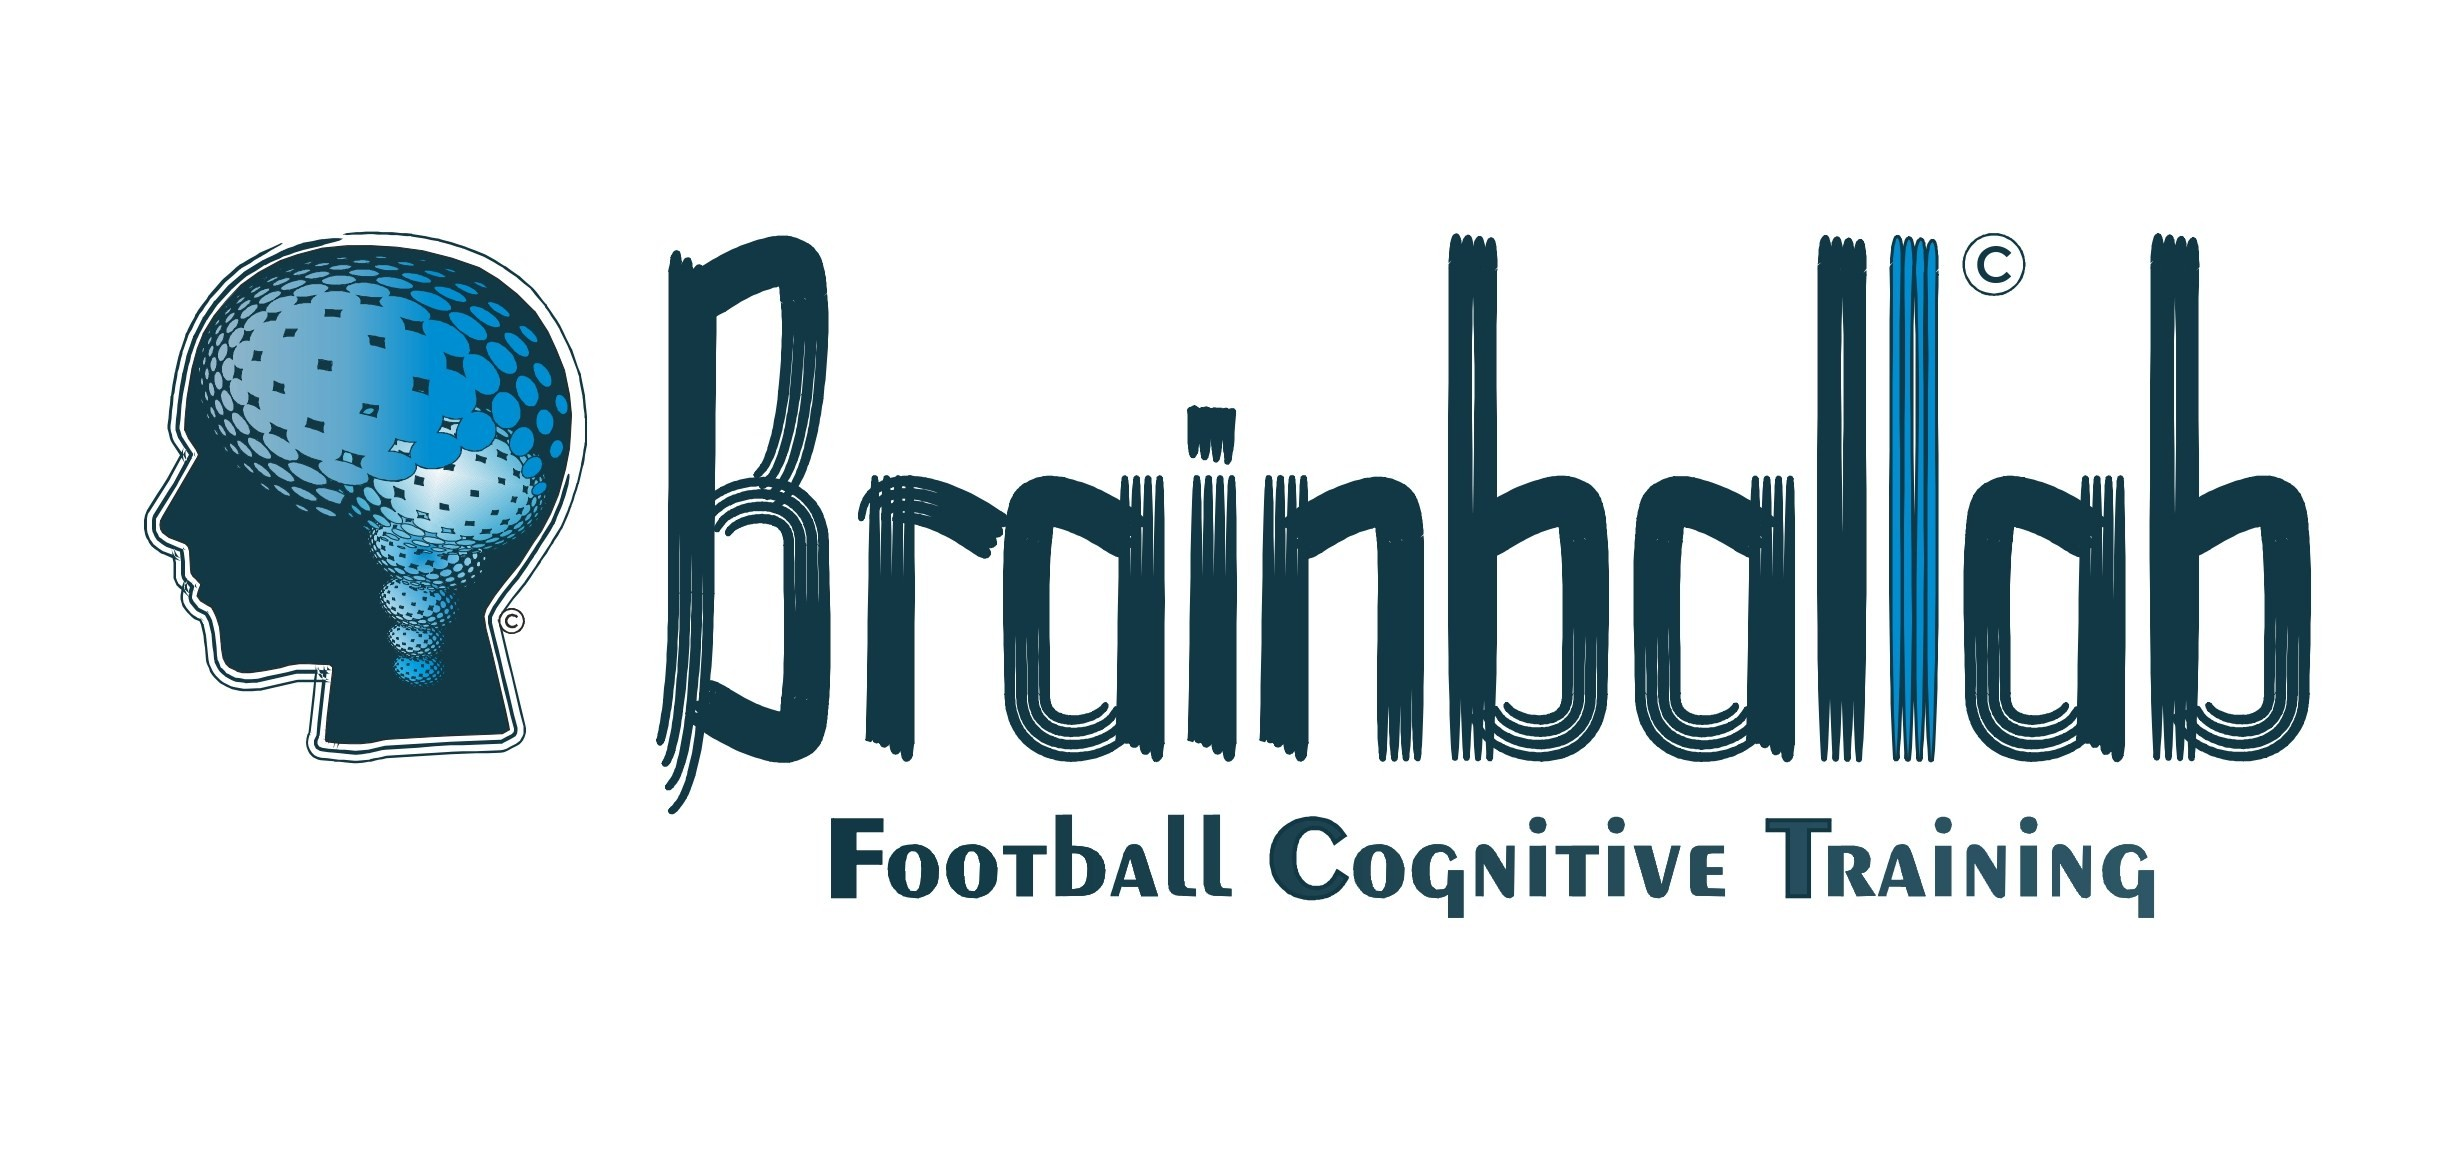 Football Cognitive Training